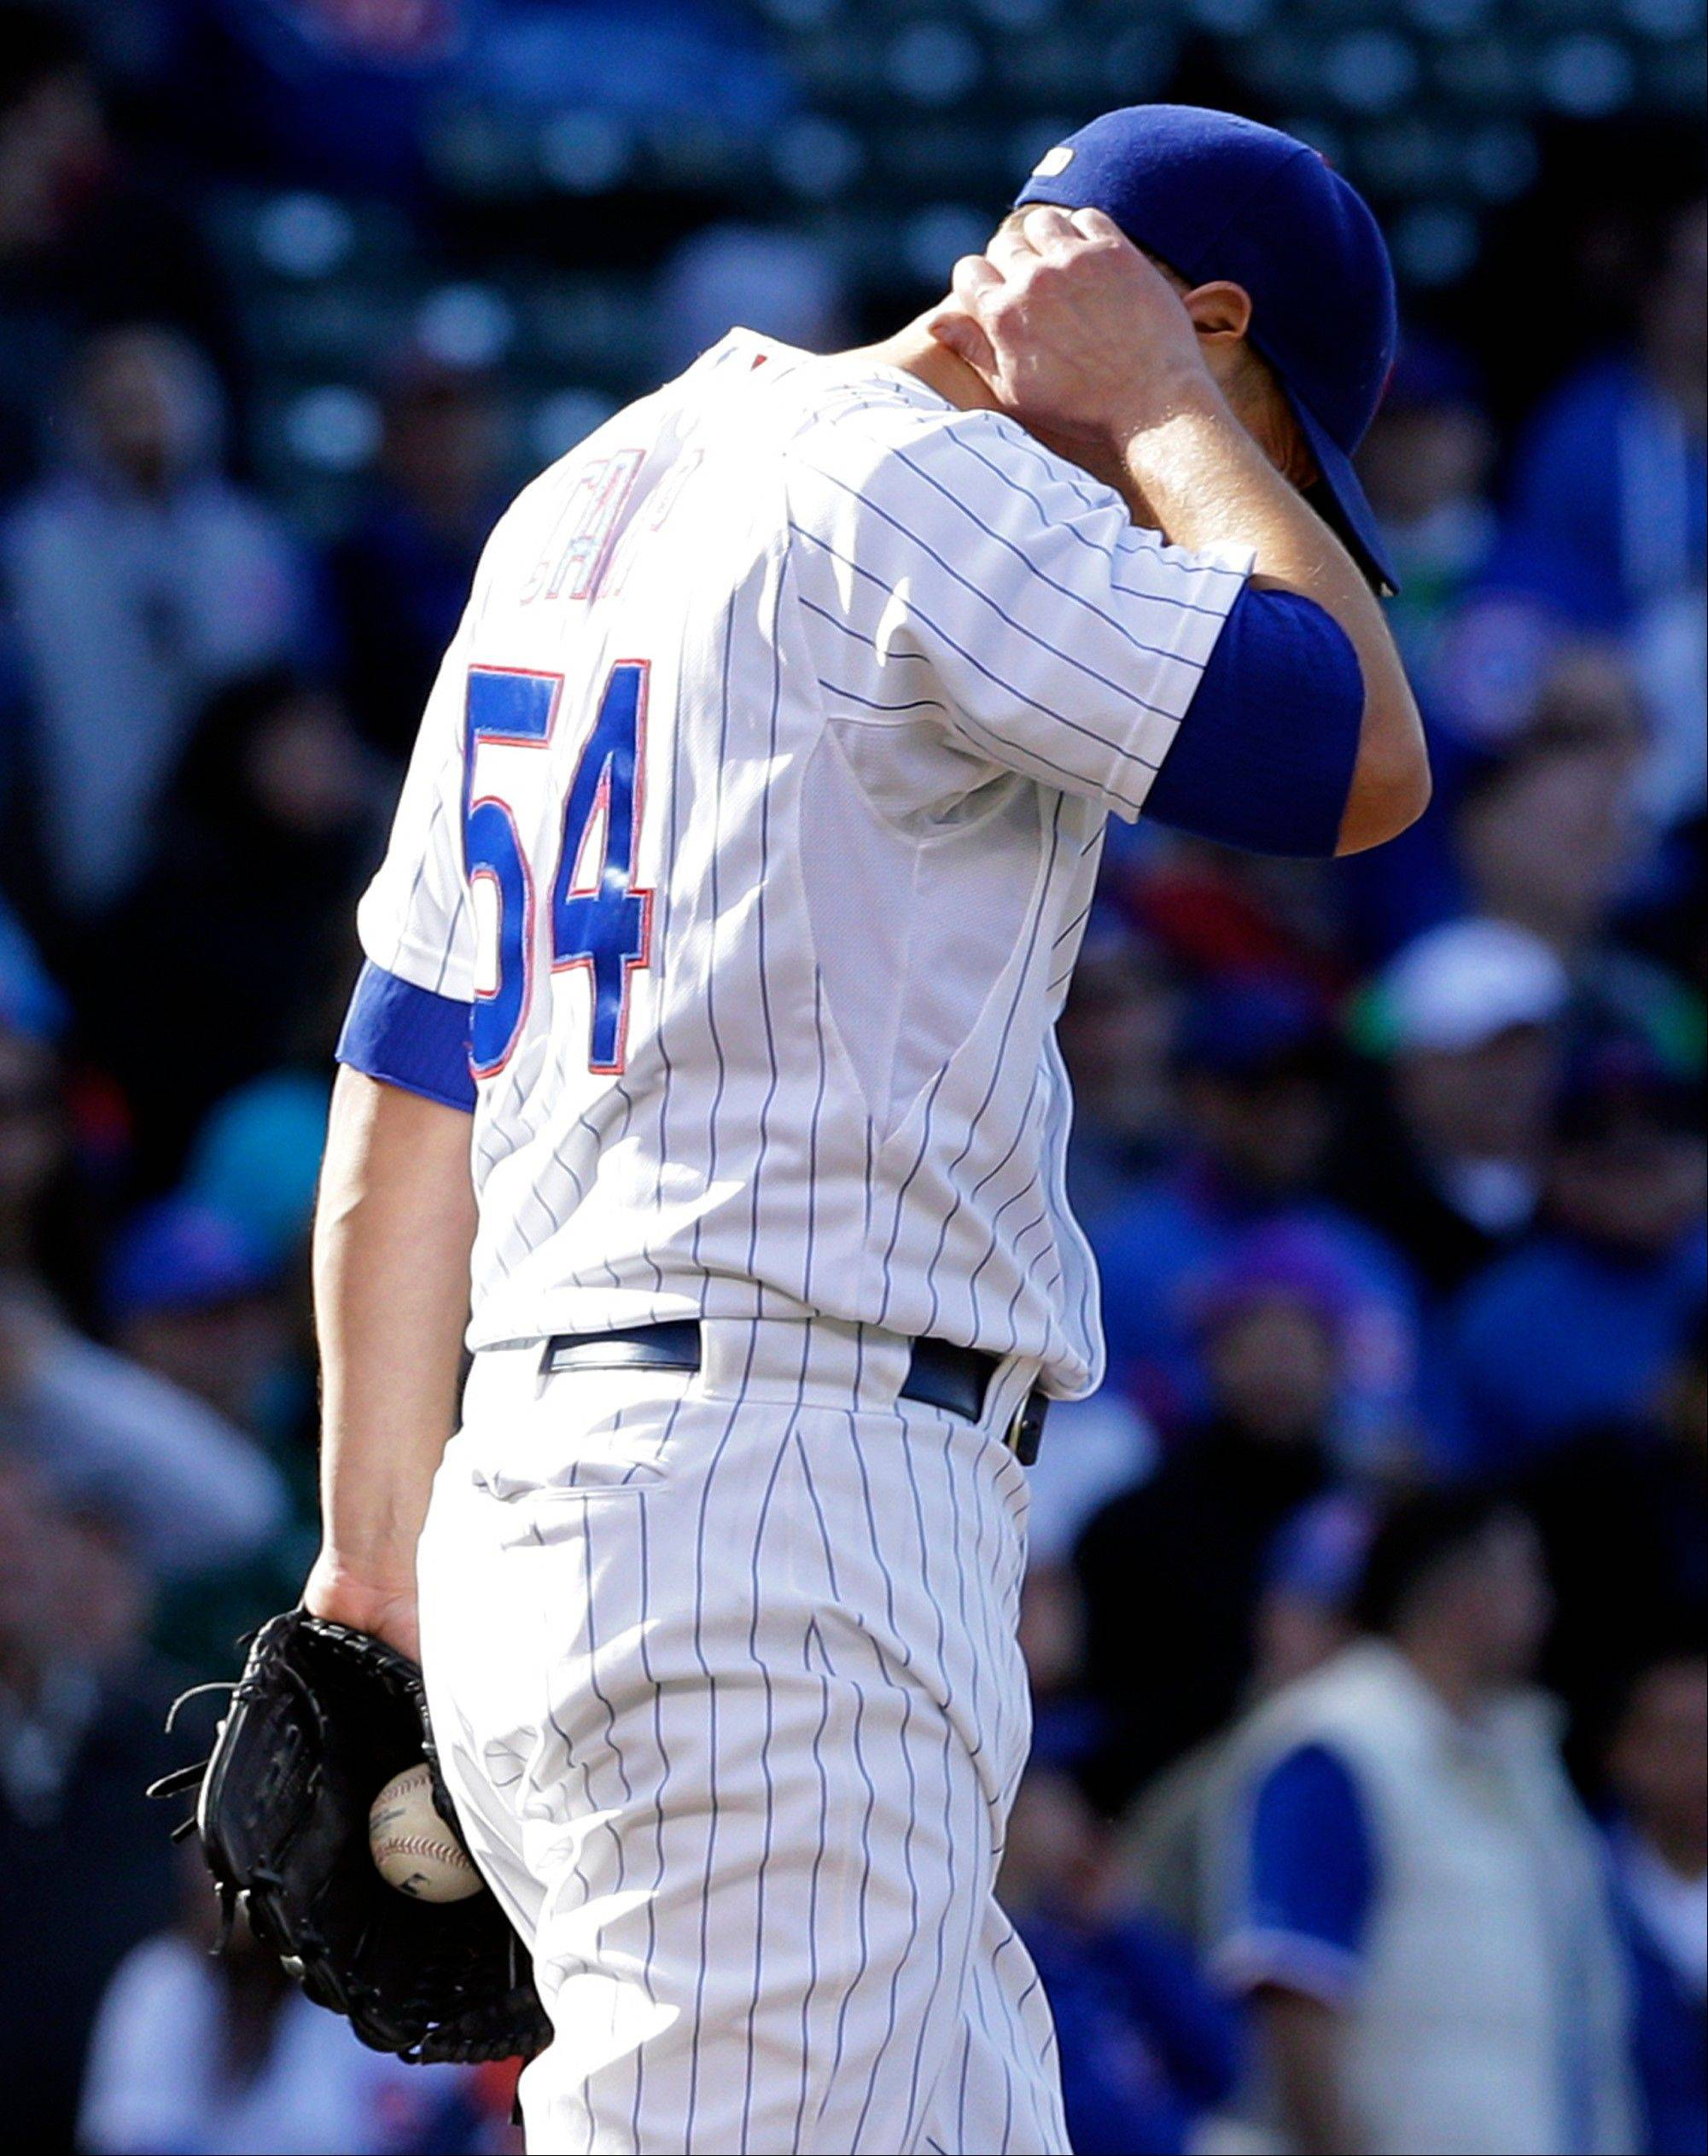 Cubs relief pitcher Shawn Camp reacts after the Giants� Hunter Pence hit a solo home run on a 2-2 pitch with two outs to tie the game in the ninth inning Sunday at Wrigley Field. The Giants won 10-7 in 10 innings.